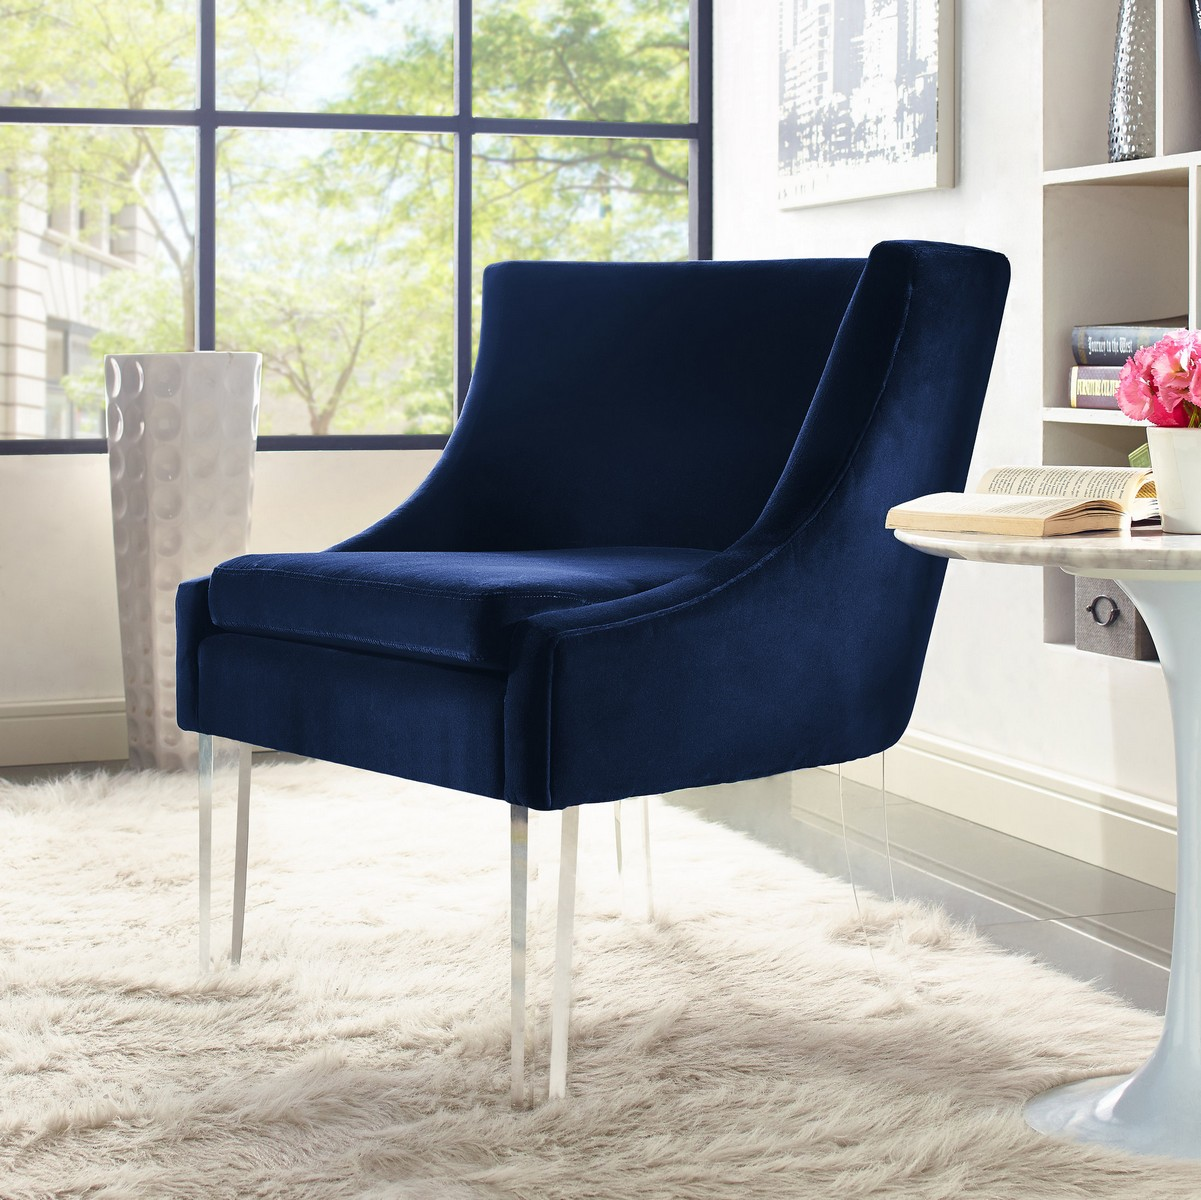 TOV Furniture Myra Blue Velvet Chair